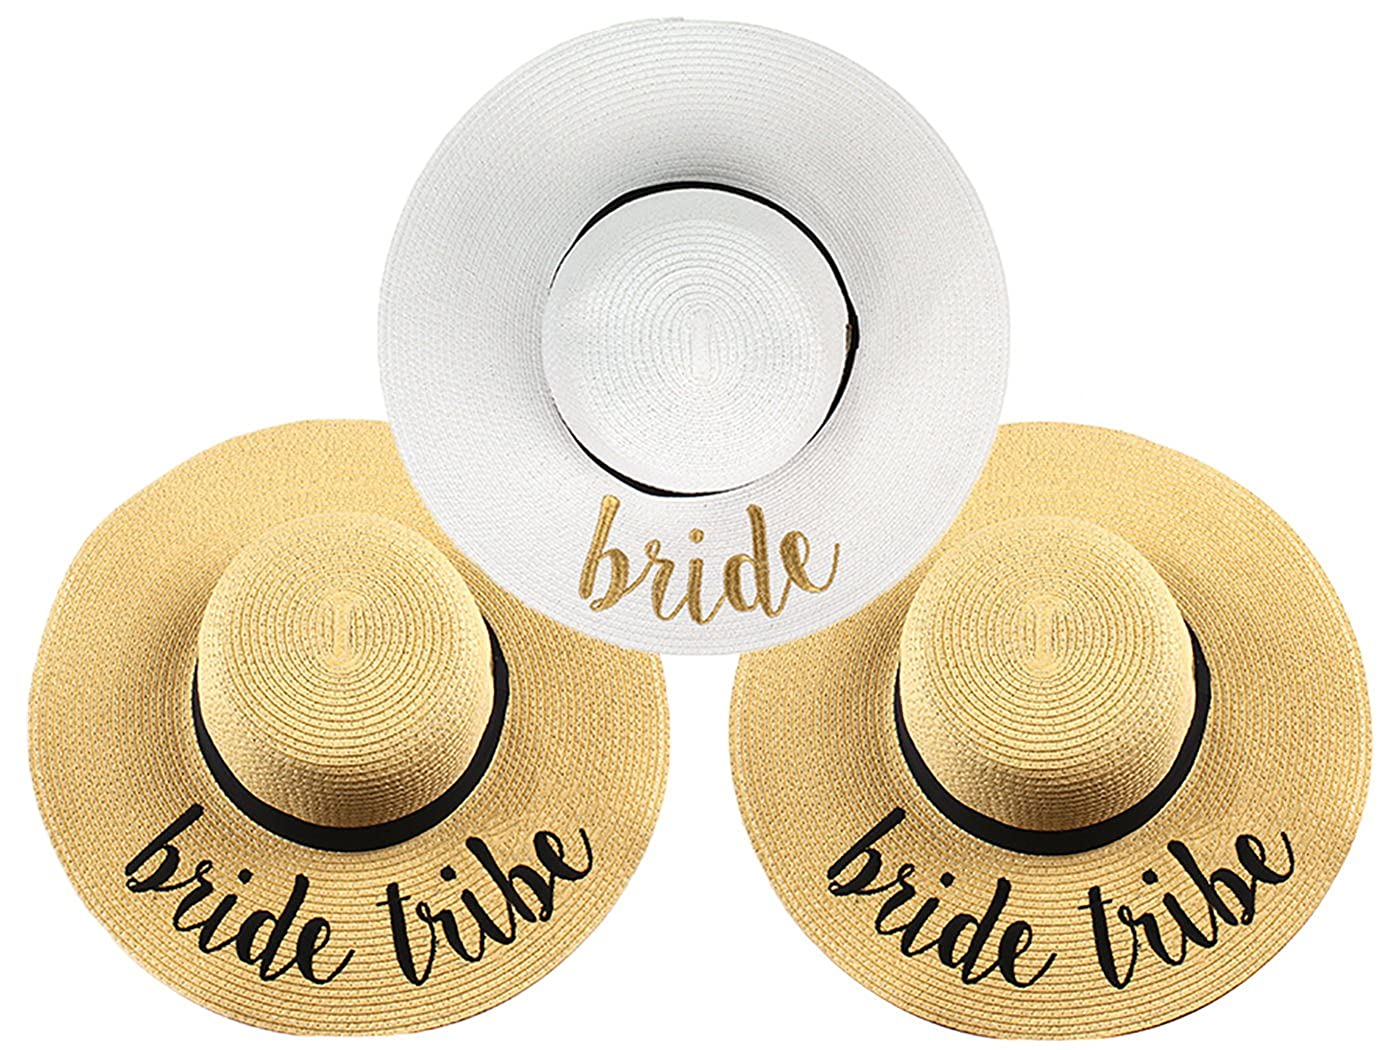 1 Bride (White gold) & 2 Bride Tribe (Natural) Bundle Funky Junque Women's Bold Cursive Embroidered Adjustable Beach Floppy Sun Hat